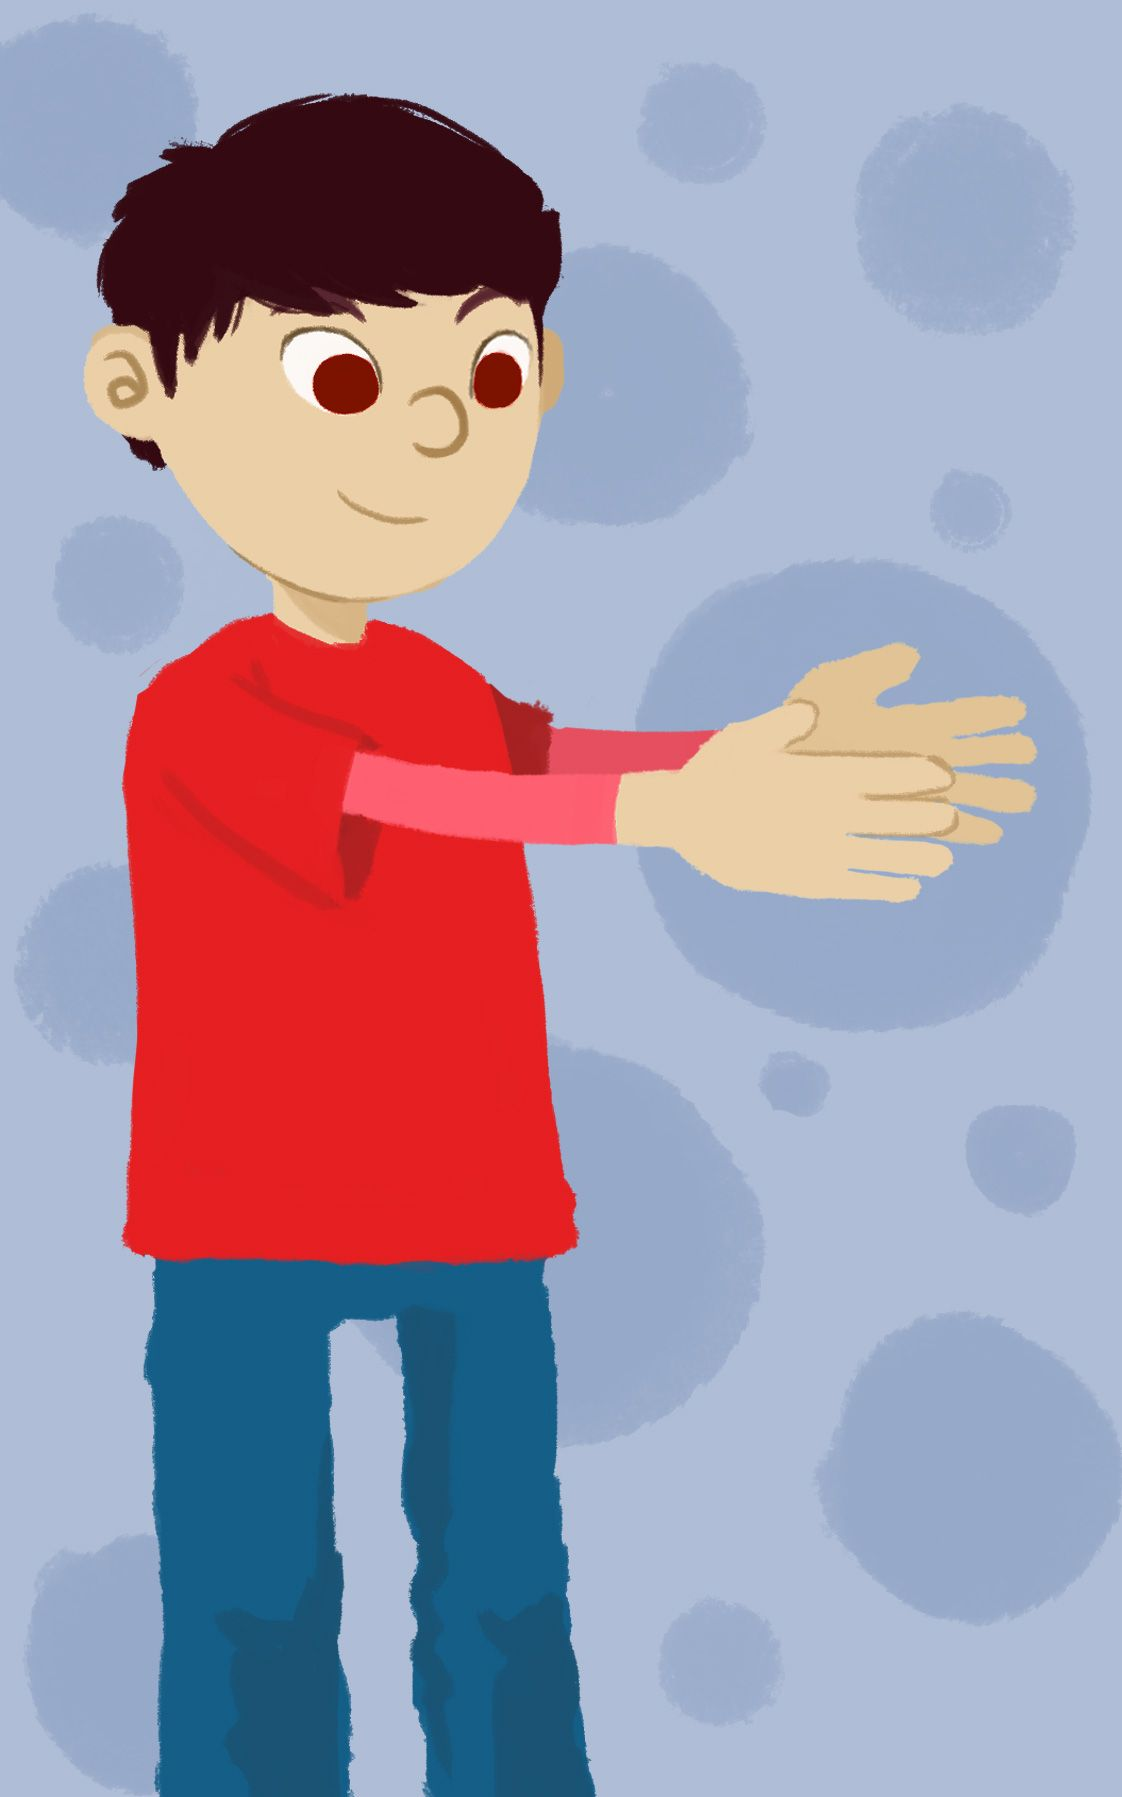 A Mindful Minute: 3 Fun Mindfulness Exercises For Kids (Illustrated